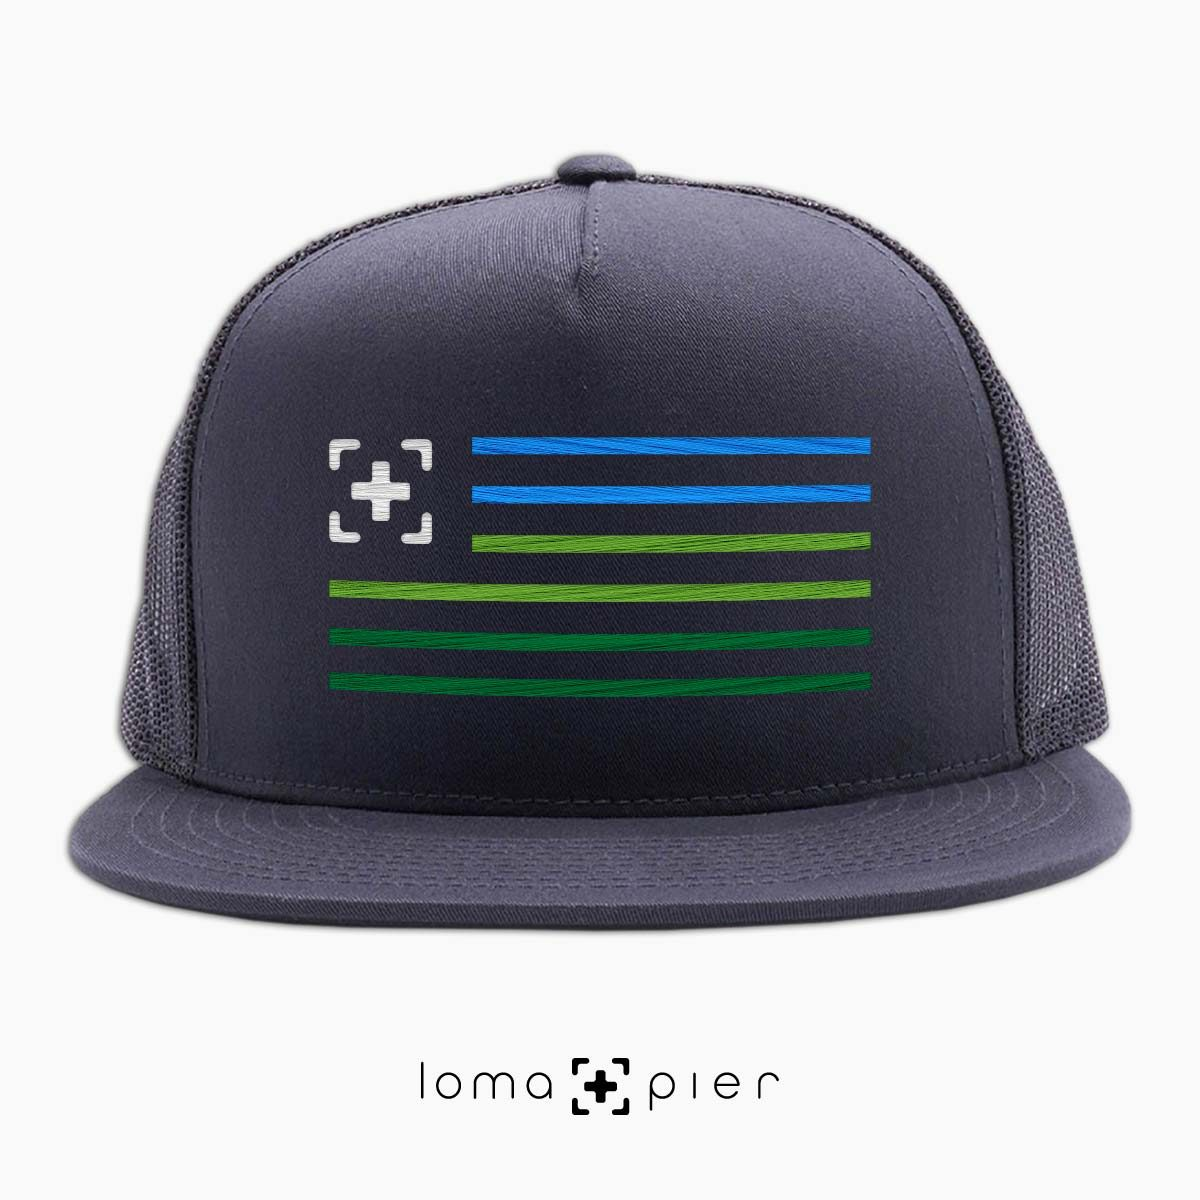 loma+stripes beach netback hat in charcoal by loma+pier hat store